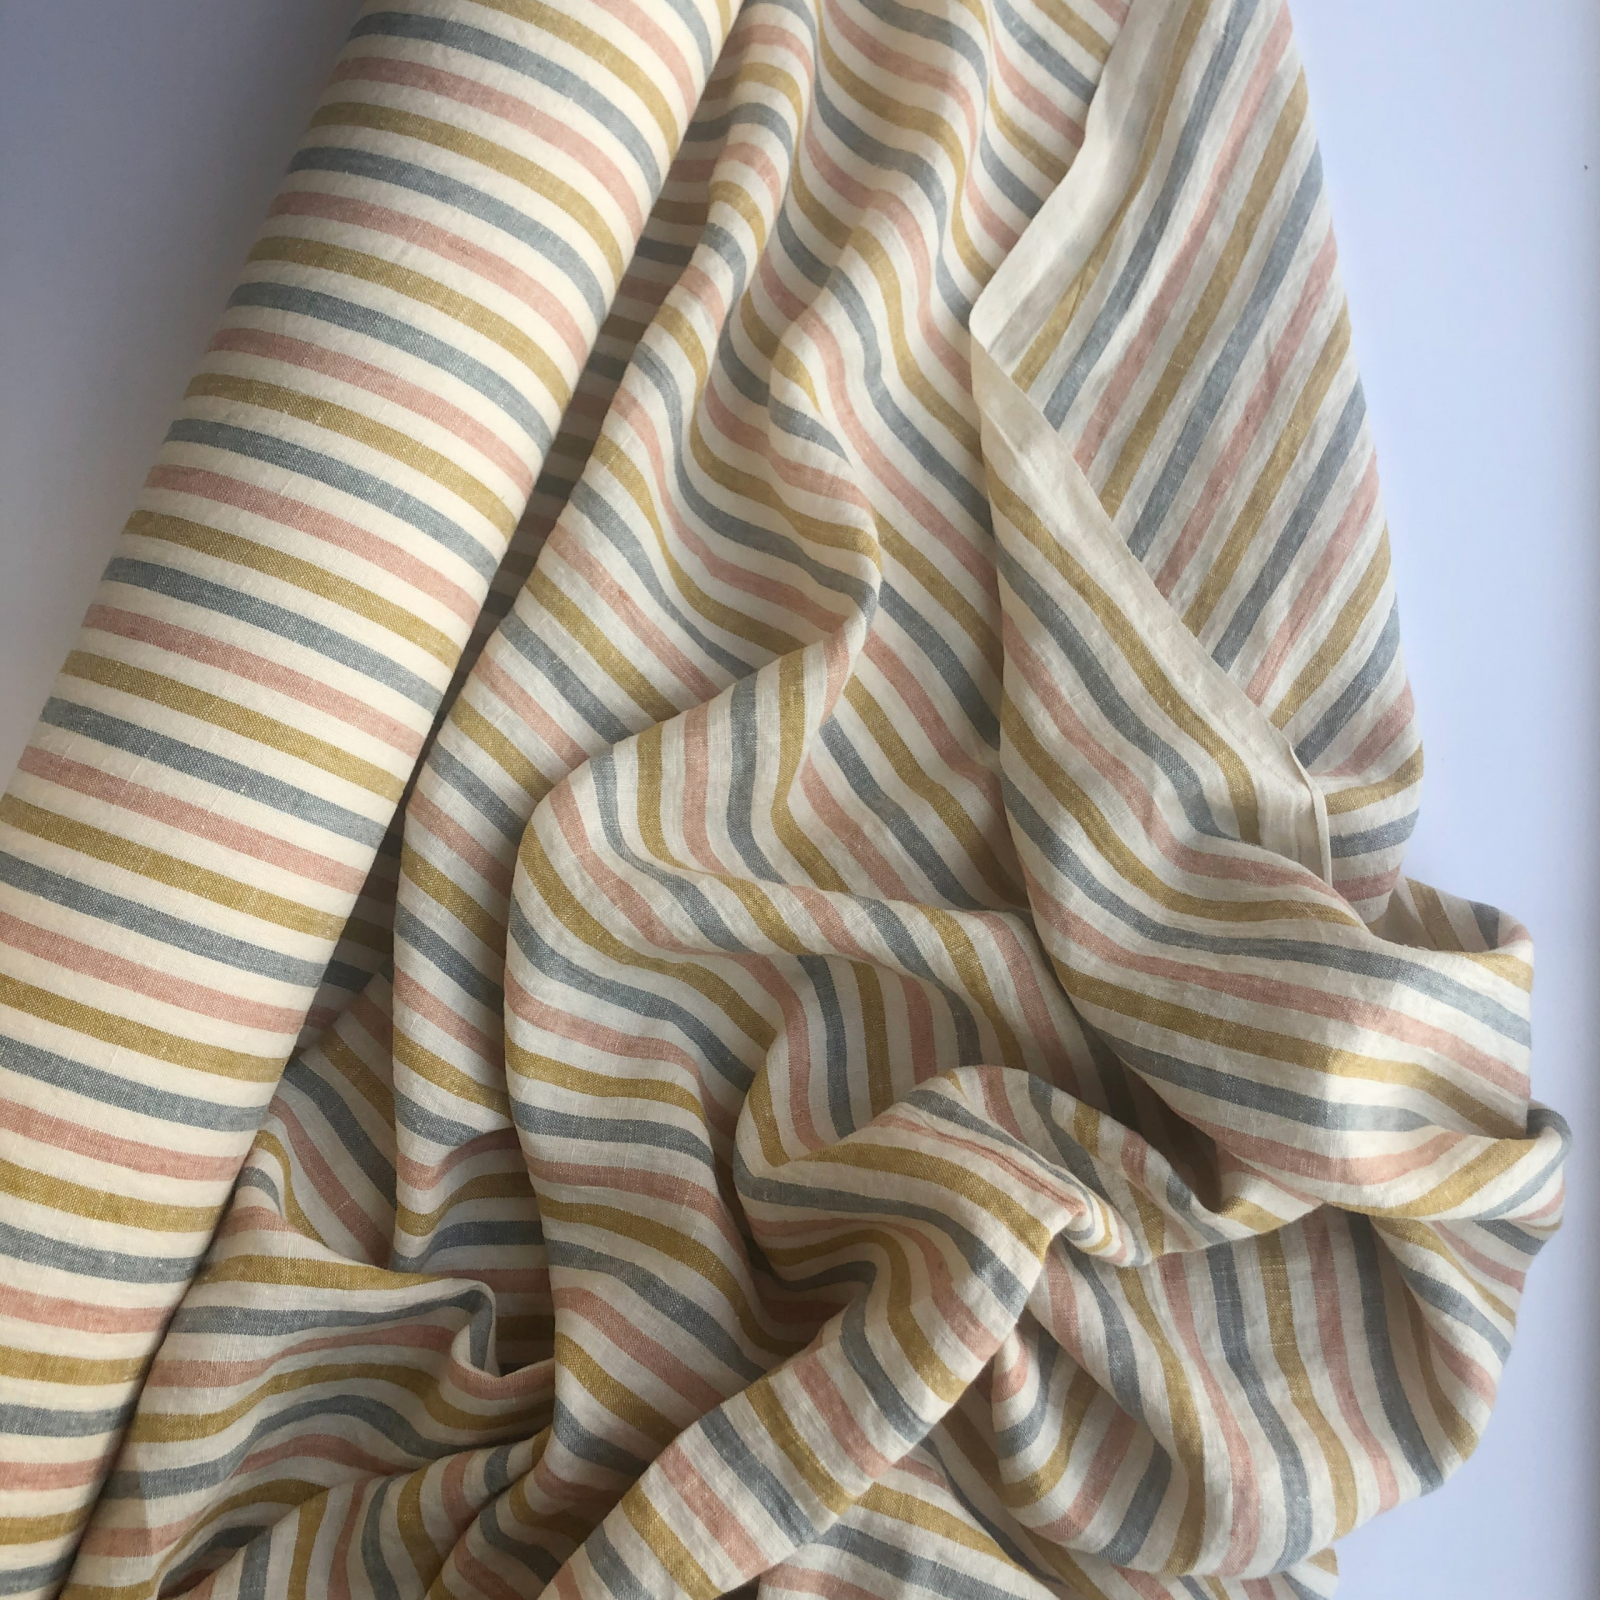 Merchant & Mills Laundered Linen - Suzy Stripe 59